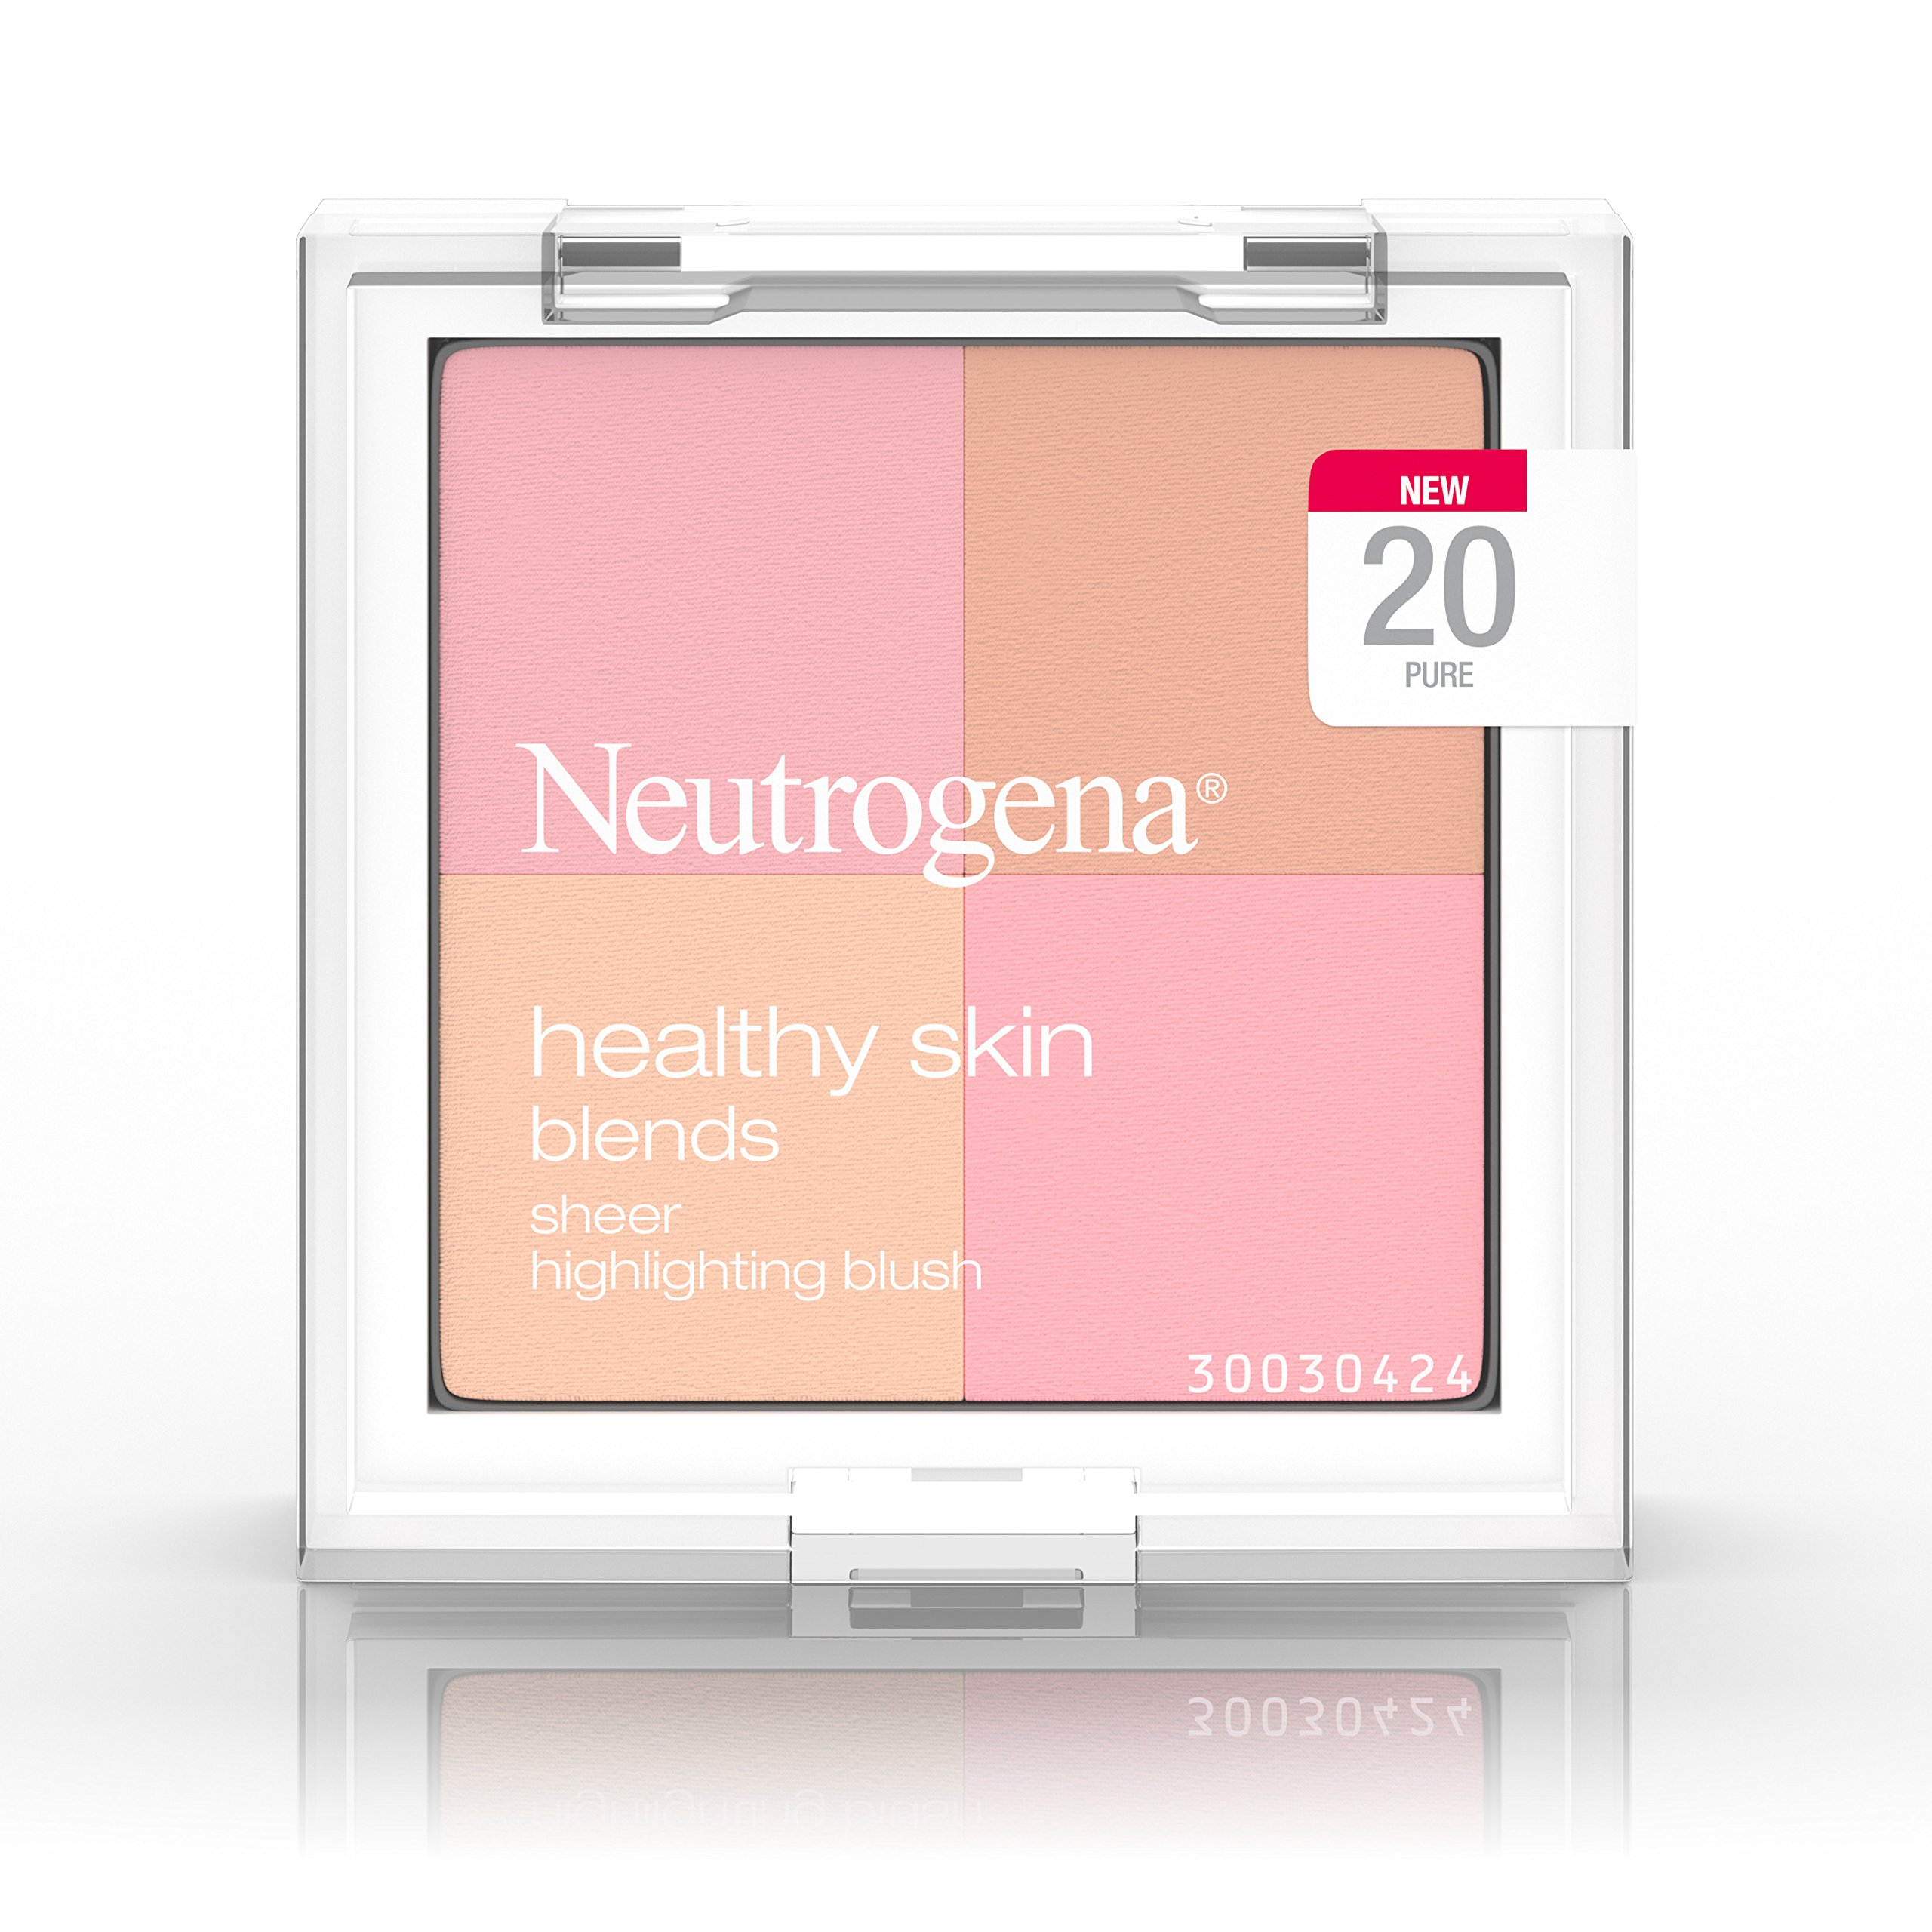 Neutrogena Healthy Skin Blends, 20 Pure, Highlighting Blush, .3 Oz.